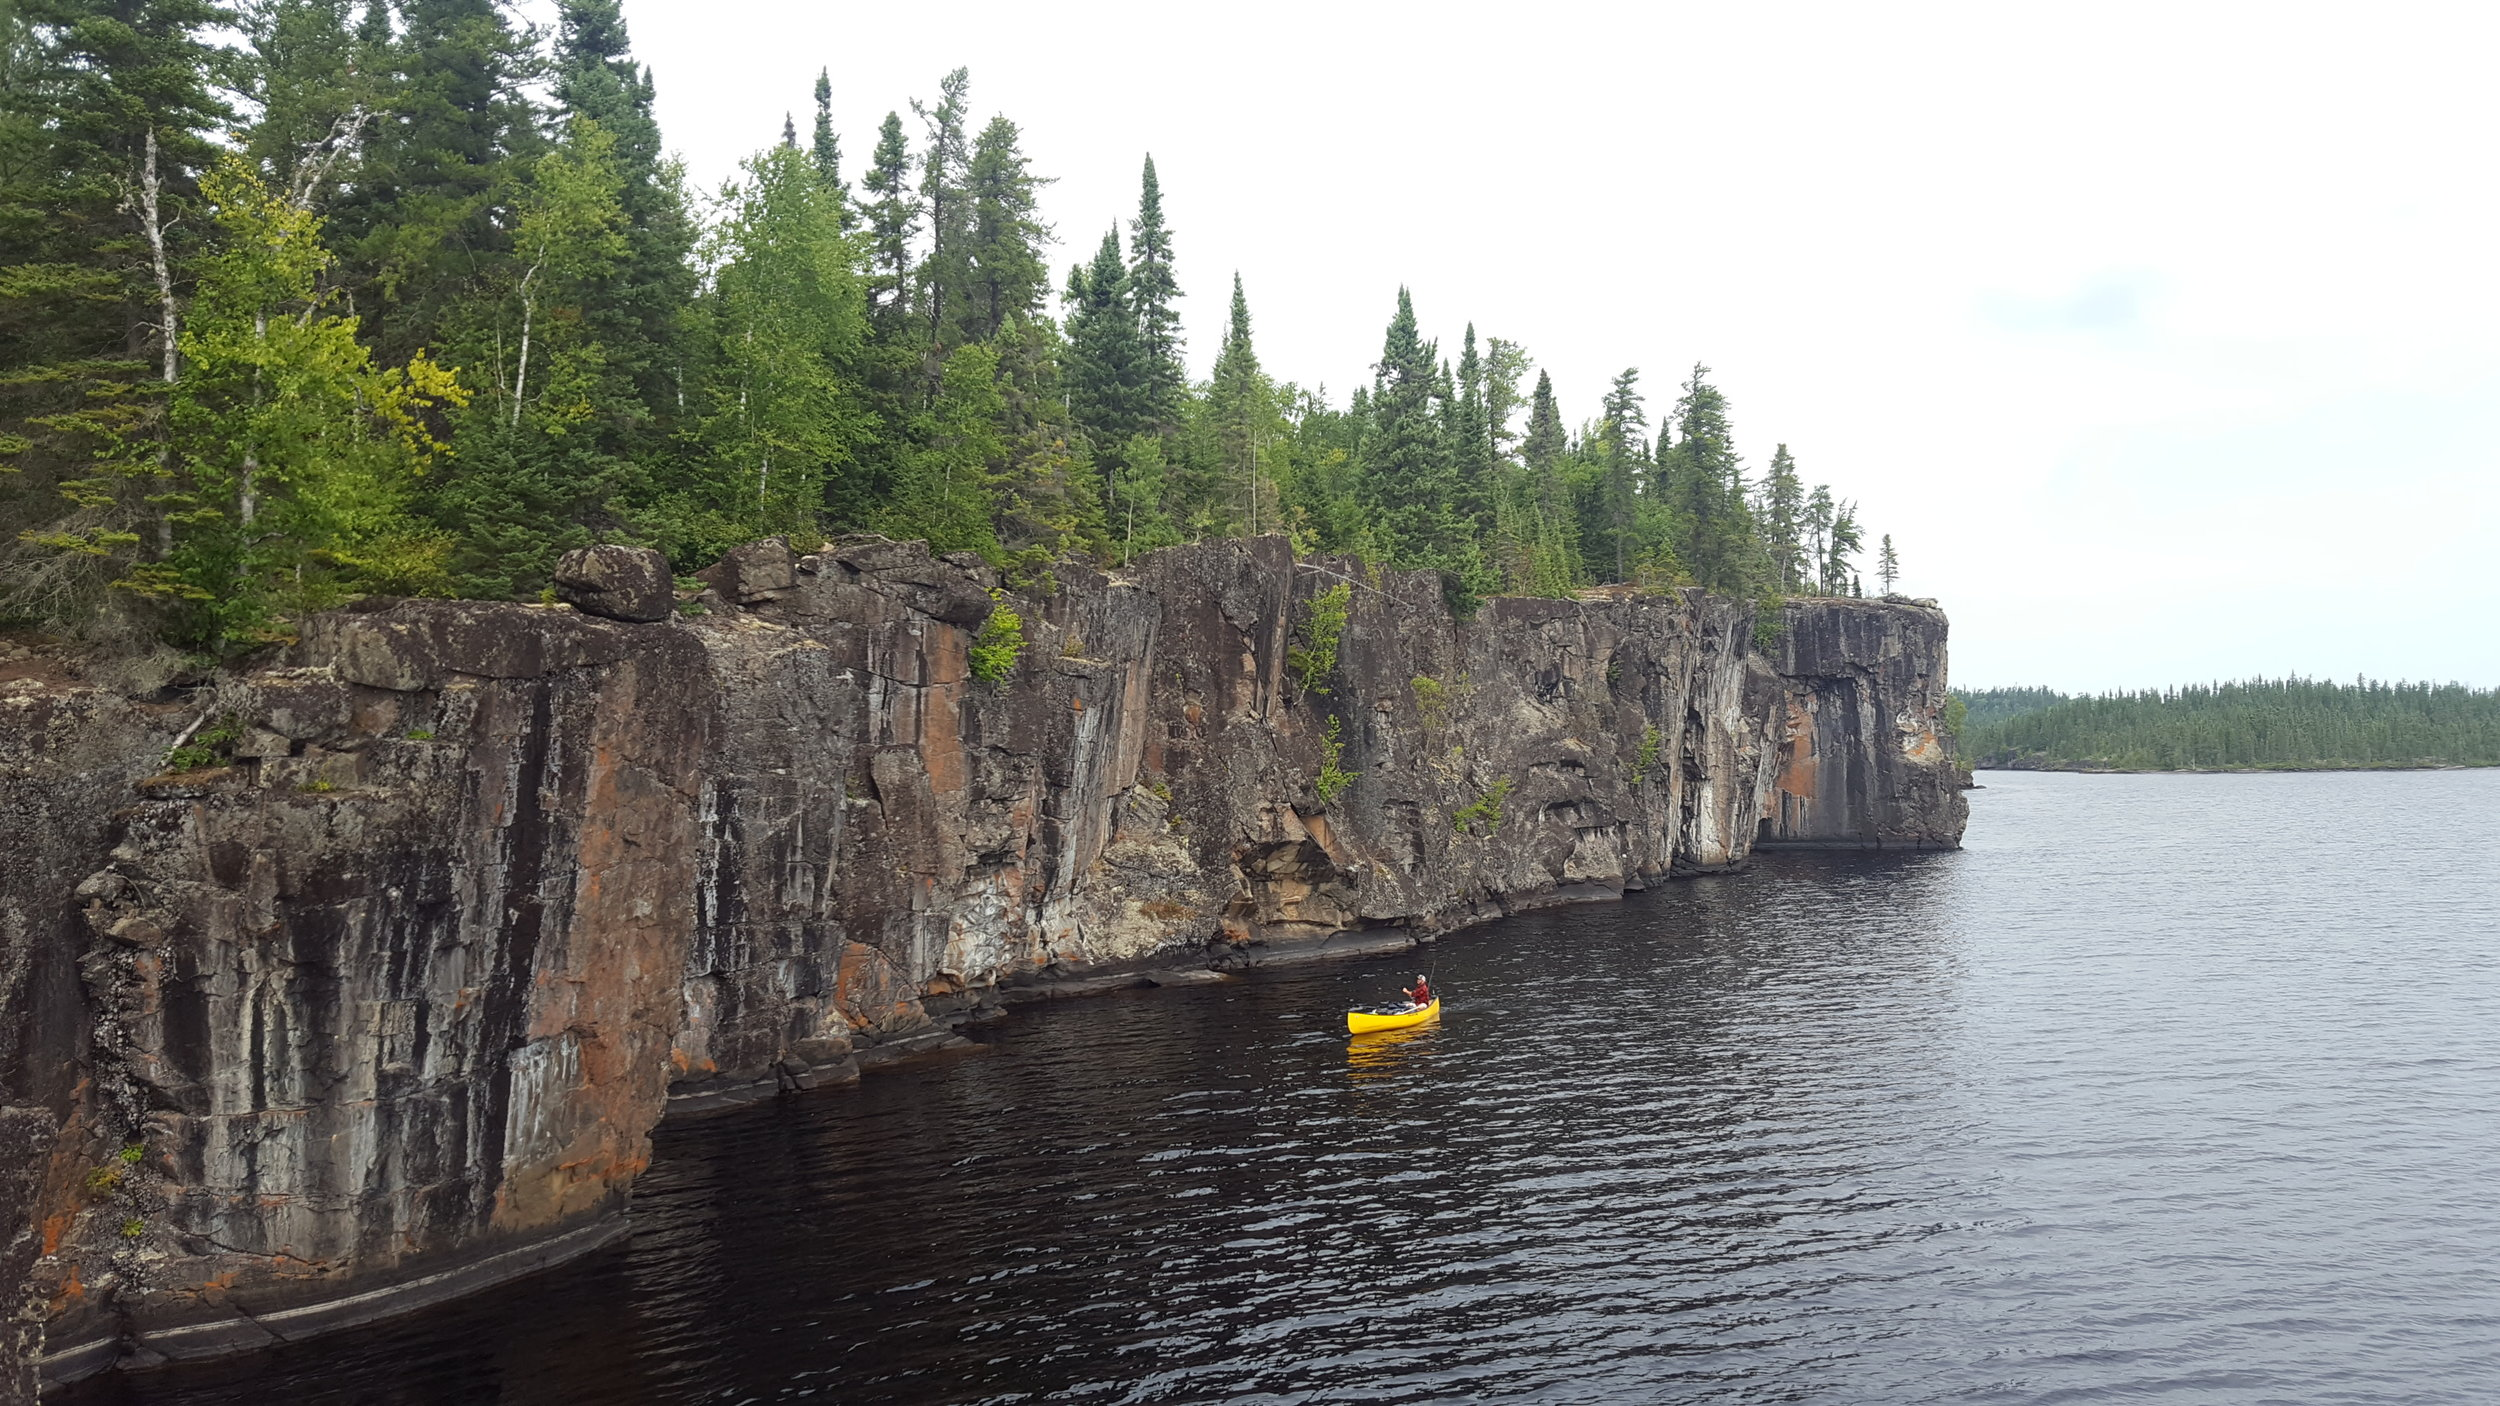 Paddling on Cliff Lake